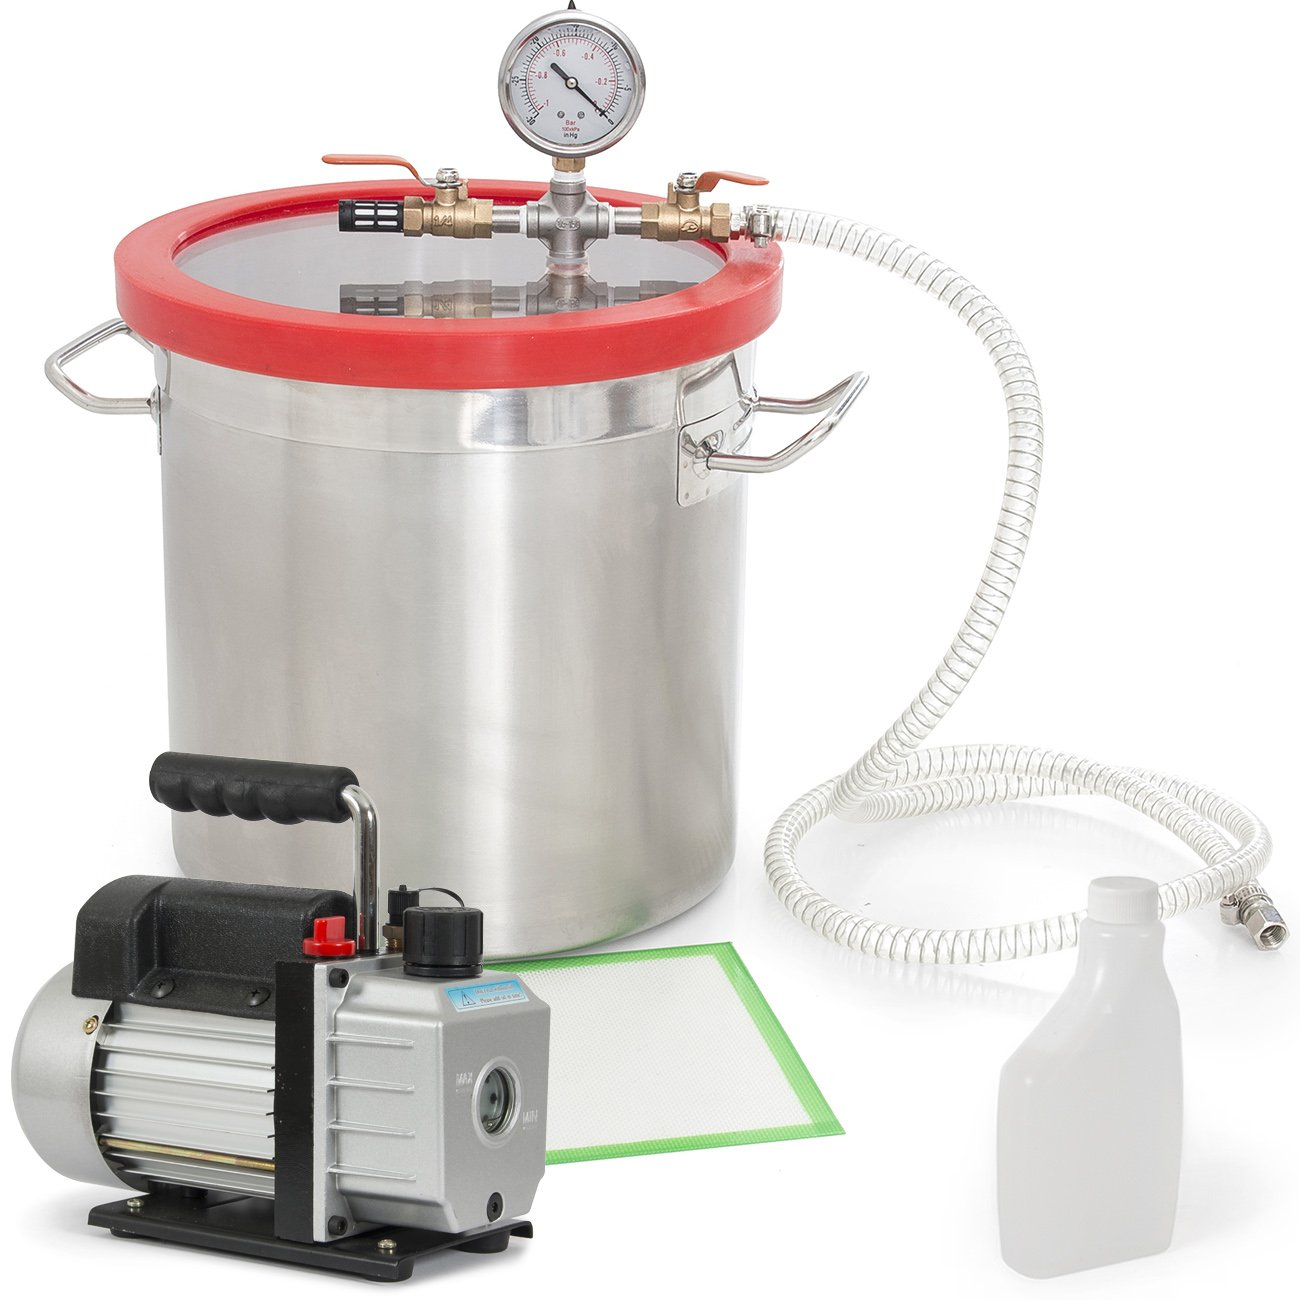 ARKSEN 5CFM Vacuum 1/2HP Pump and Vacuum Chamber 5 Gallon Silicone for Expoxy Degassing Kit by ARKSEN